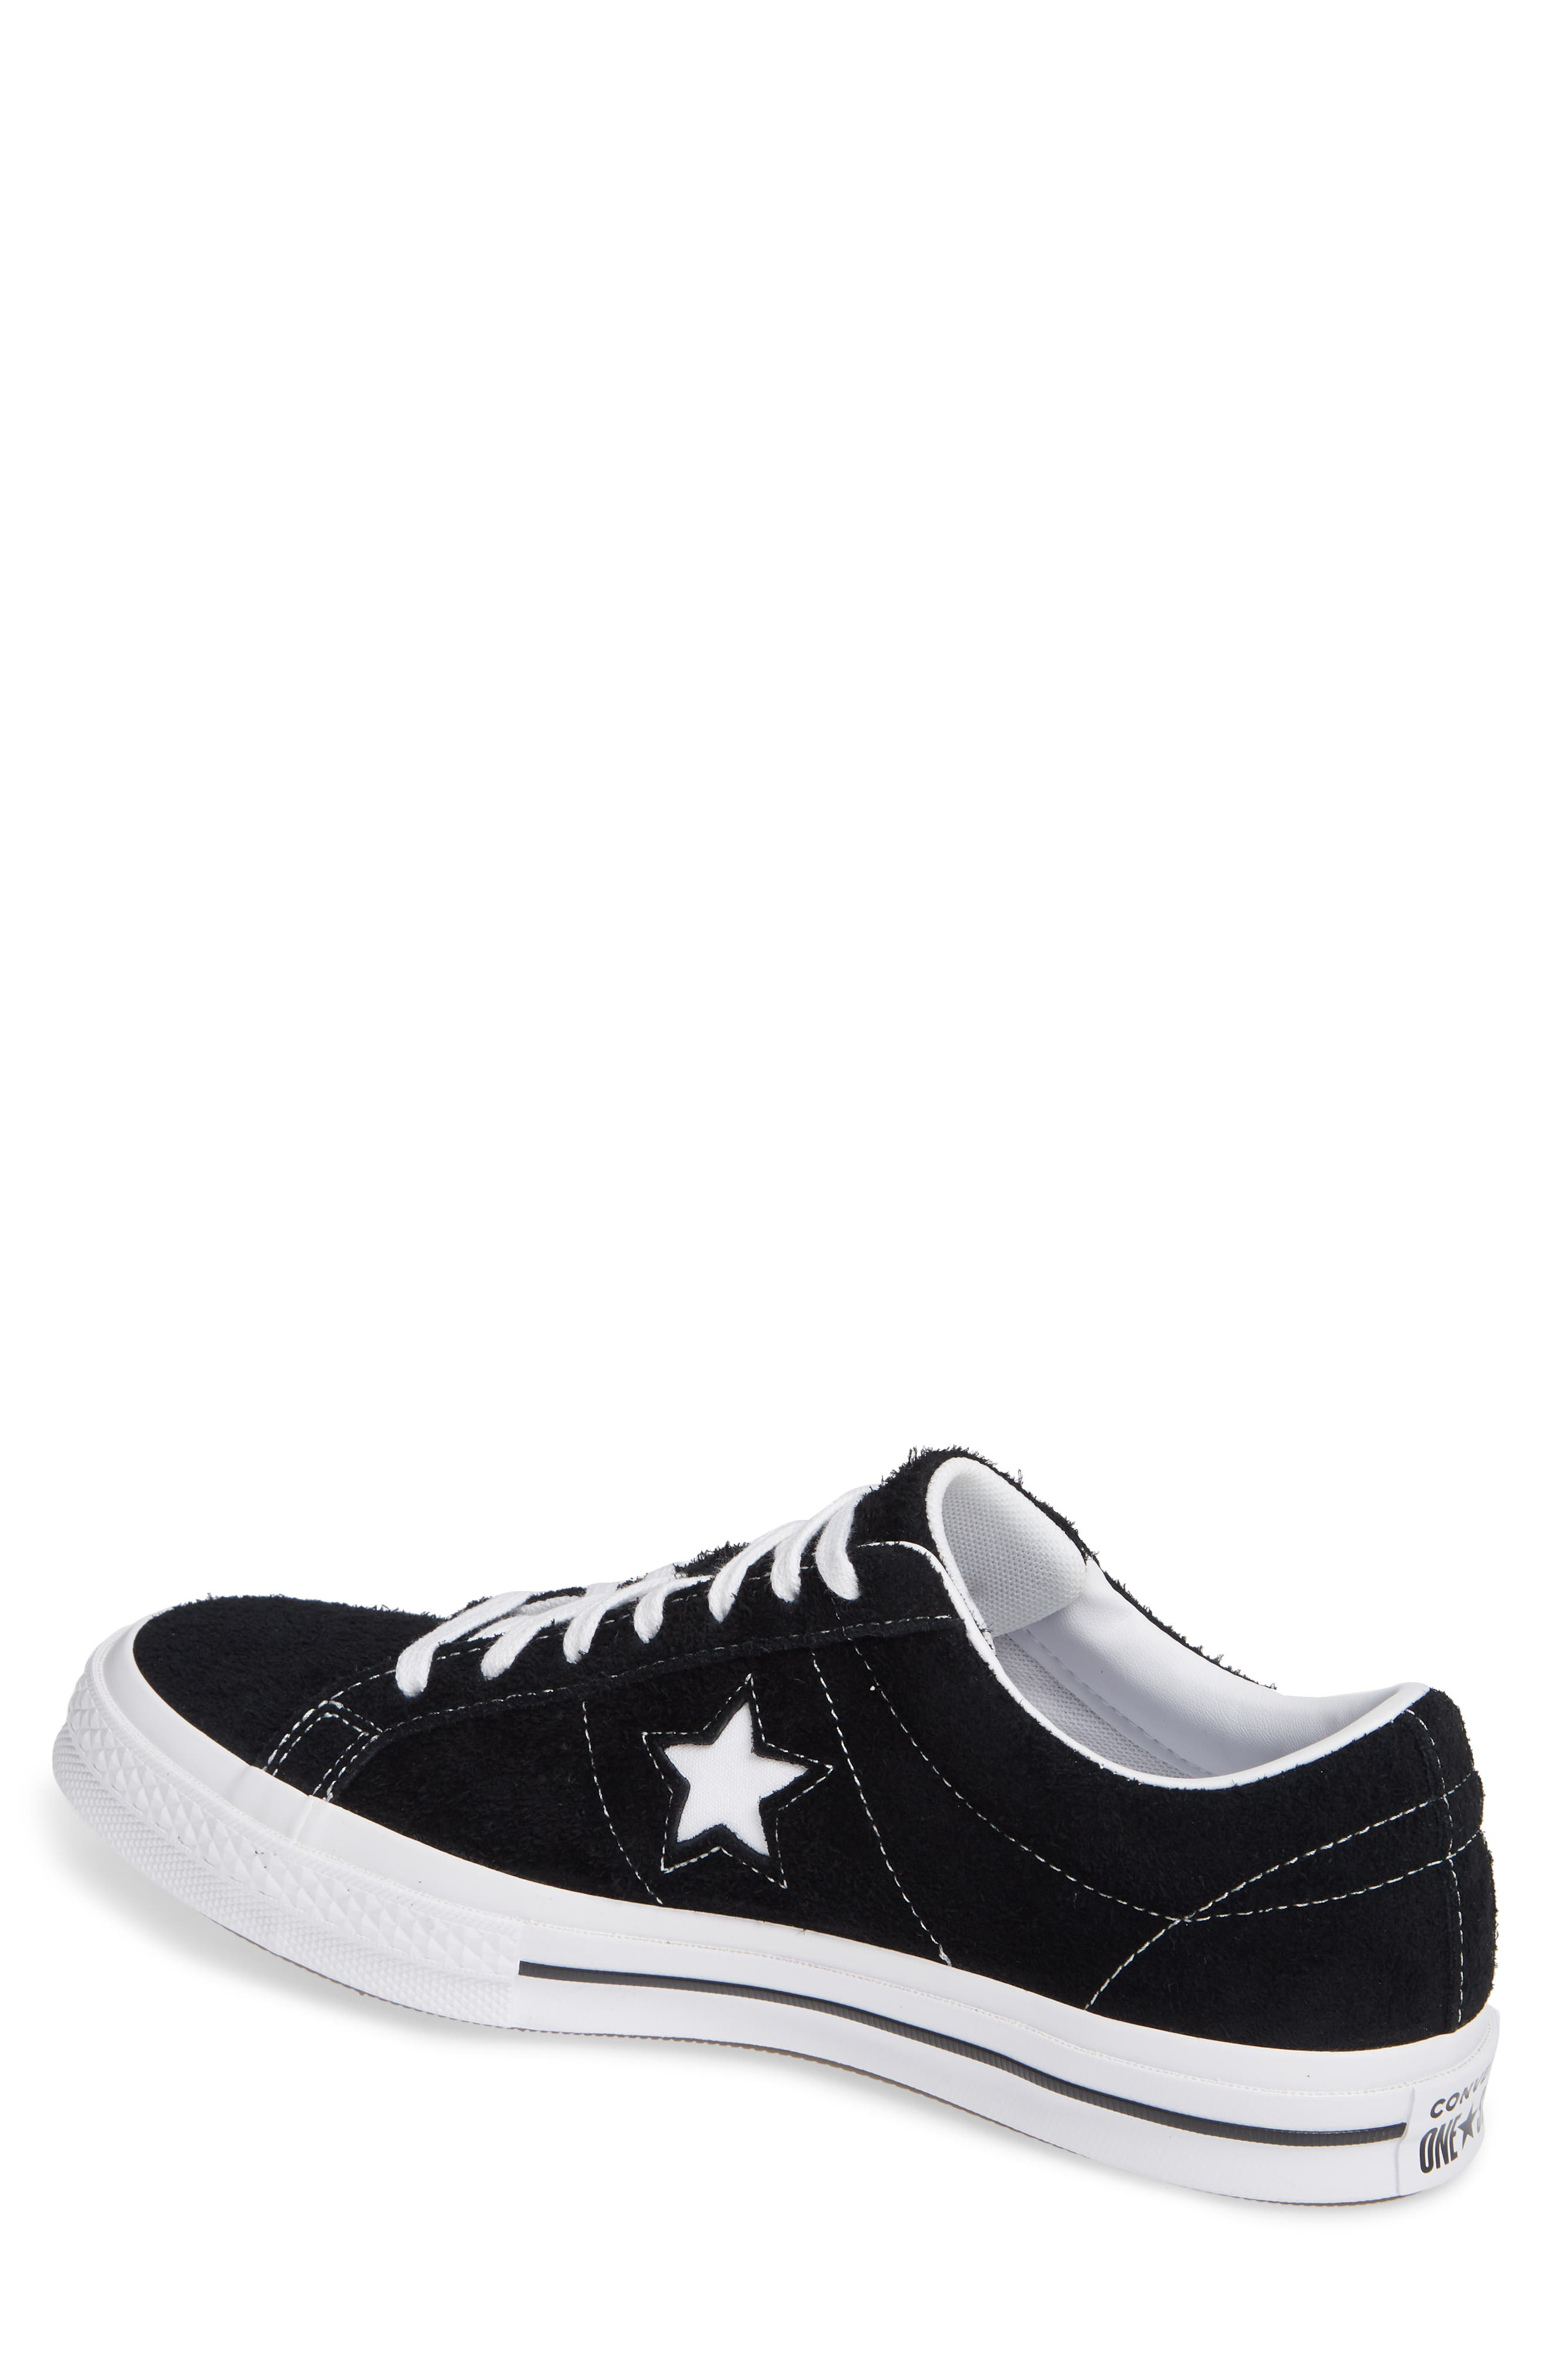 One Star Low Top Sneaker,                             Alternate thumbnail 2, color,                             001